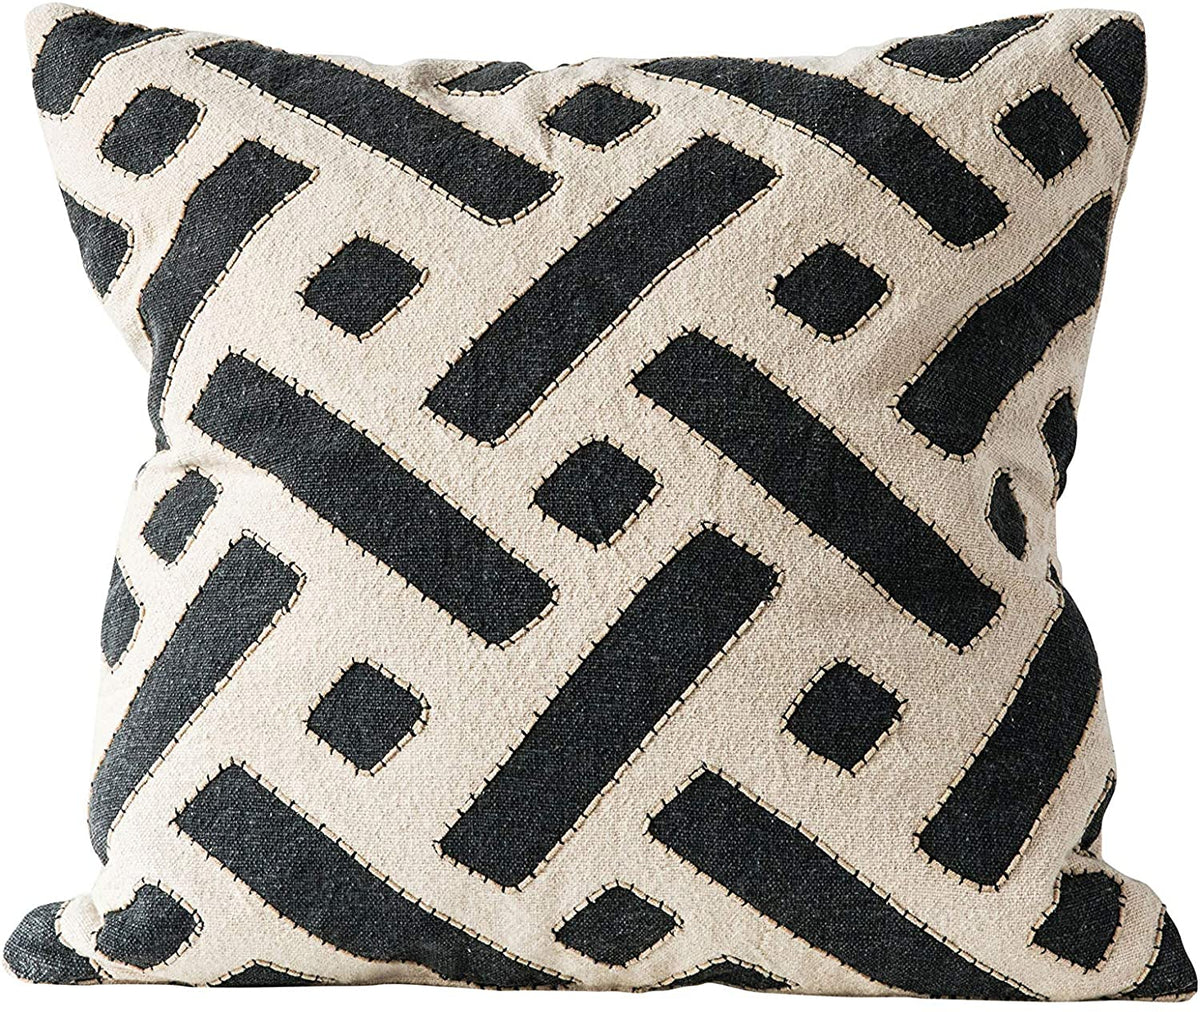 Creative Co-op - Cotton Kuba Pillow with Embroidery, Black & Natural